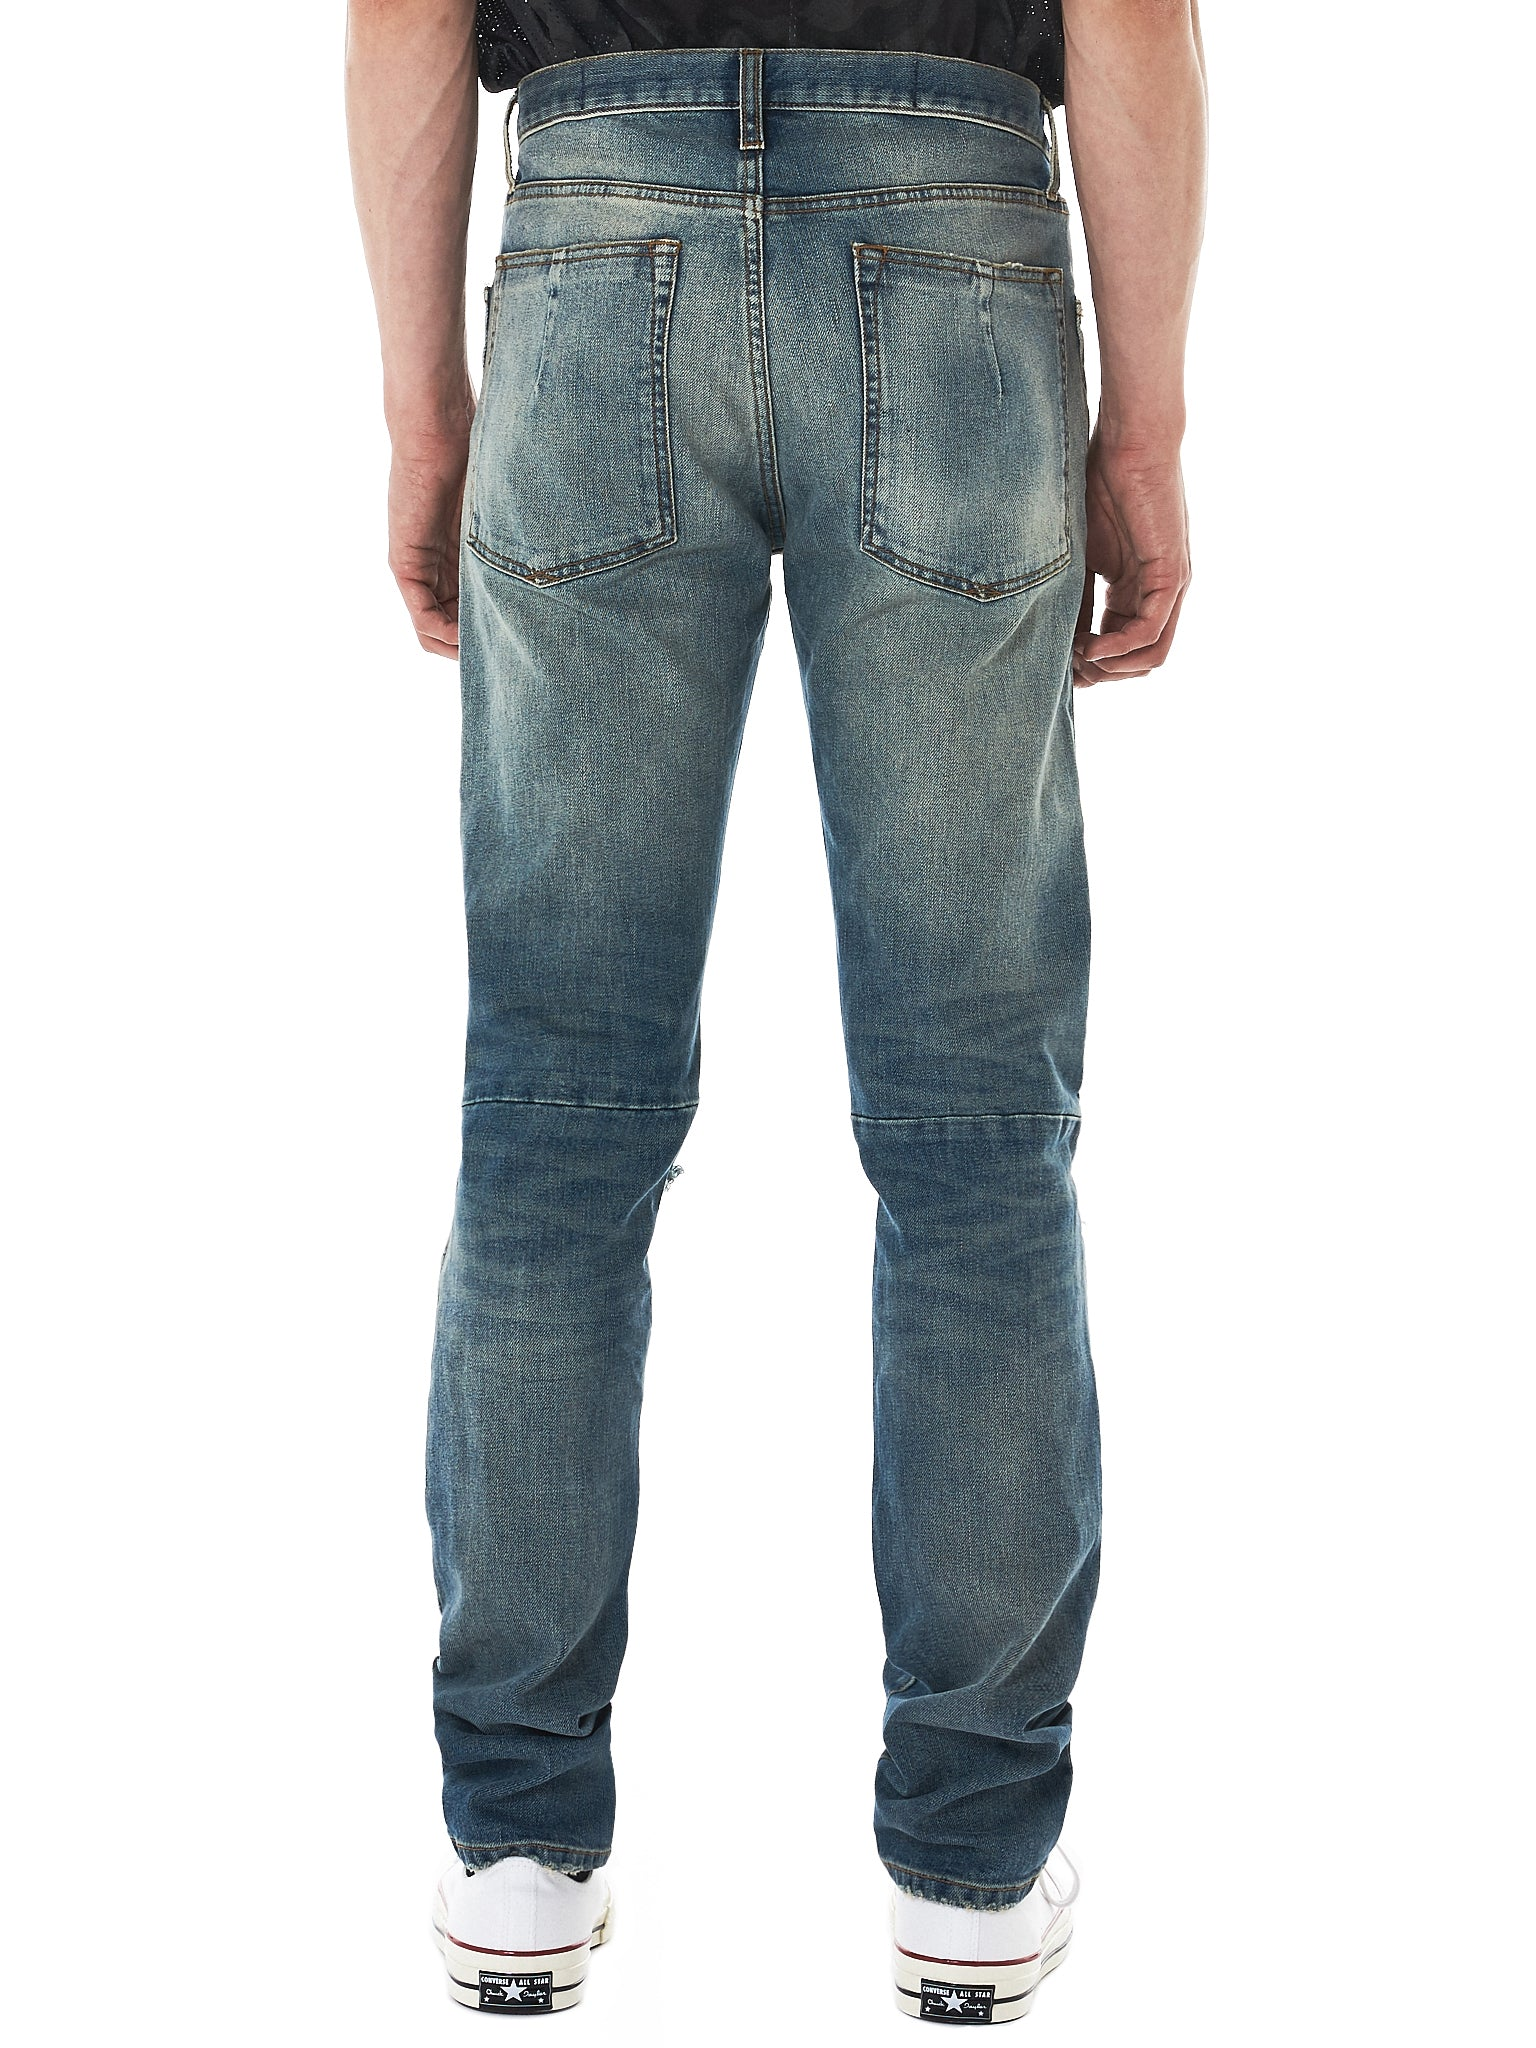 Unravel Distressed Jeans - Hlorenzo Back